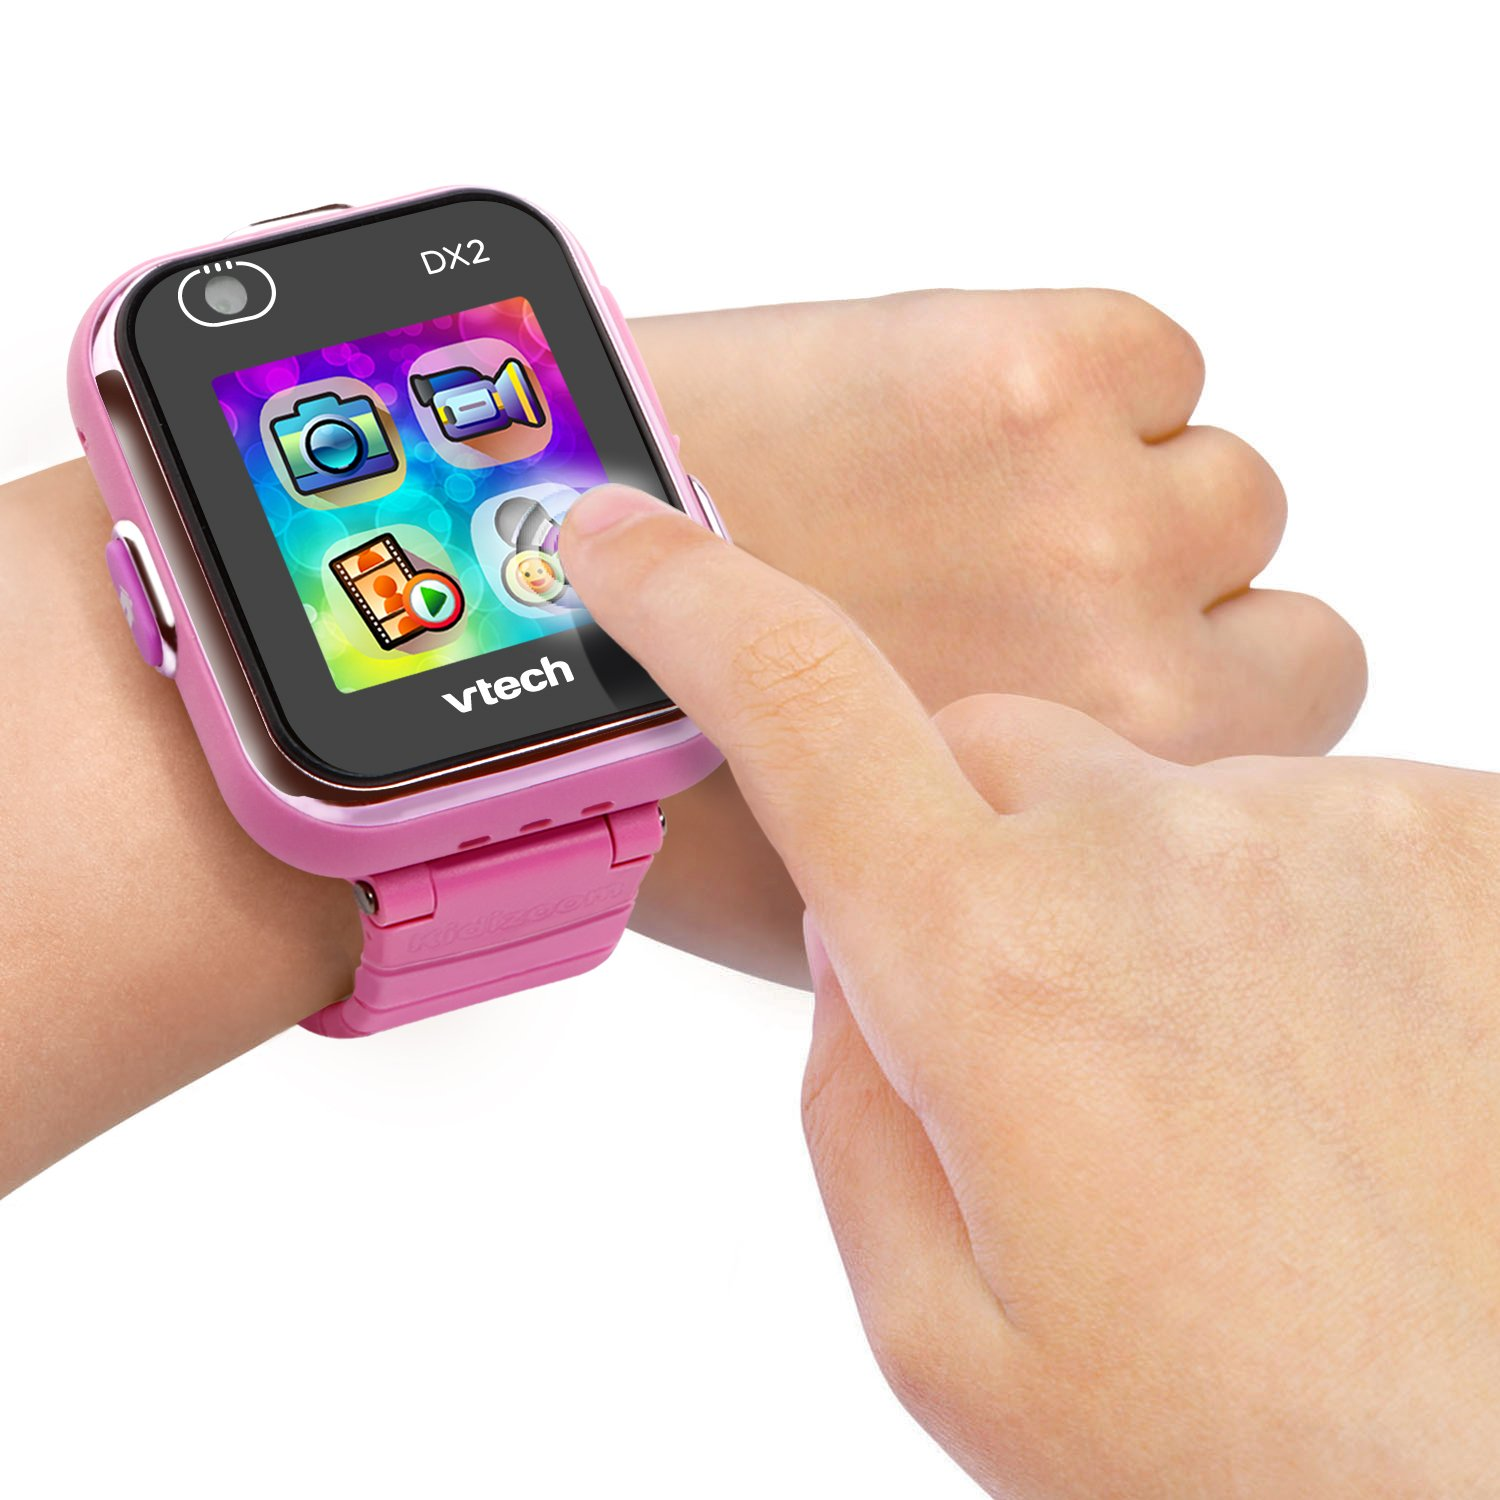 VTech Kidizoom Smart Watch DX2 - Reloj inteligente para niños, color rosa, versión Alemana (80-193854)